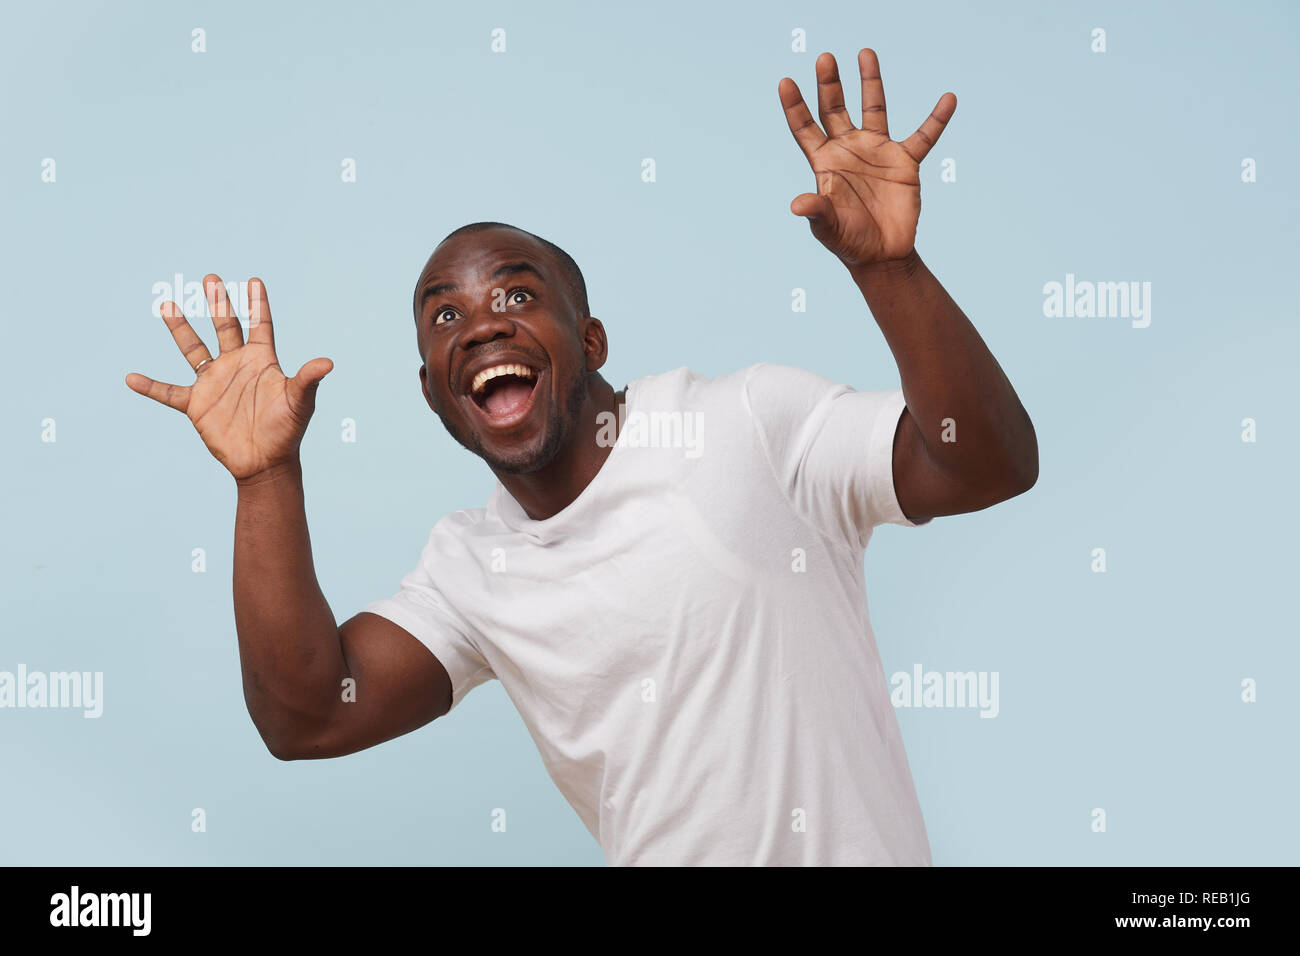 Handsome bold black man in white T-shirt is smiling, against pale blue background. ?razy eyes, eyebrows raised. Wow gesture. Grimacing. - Stock Image